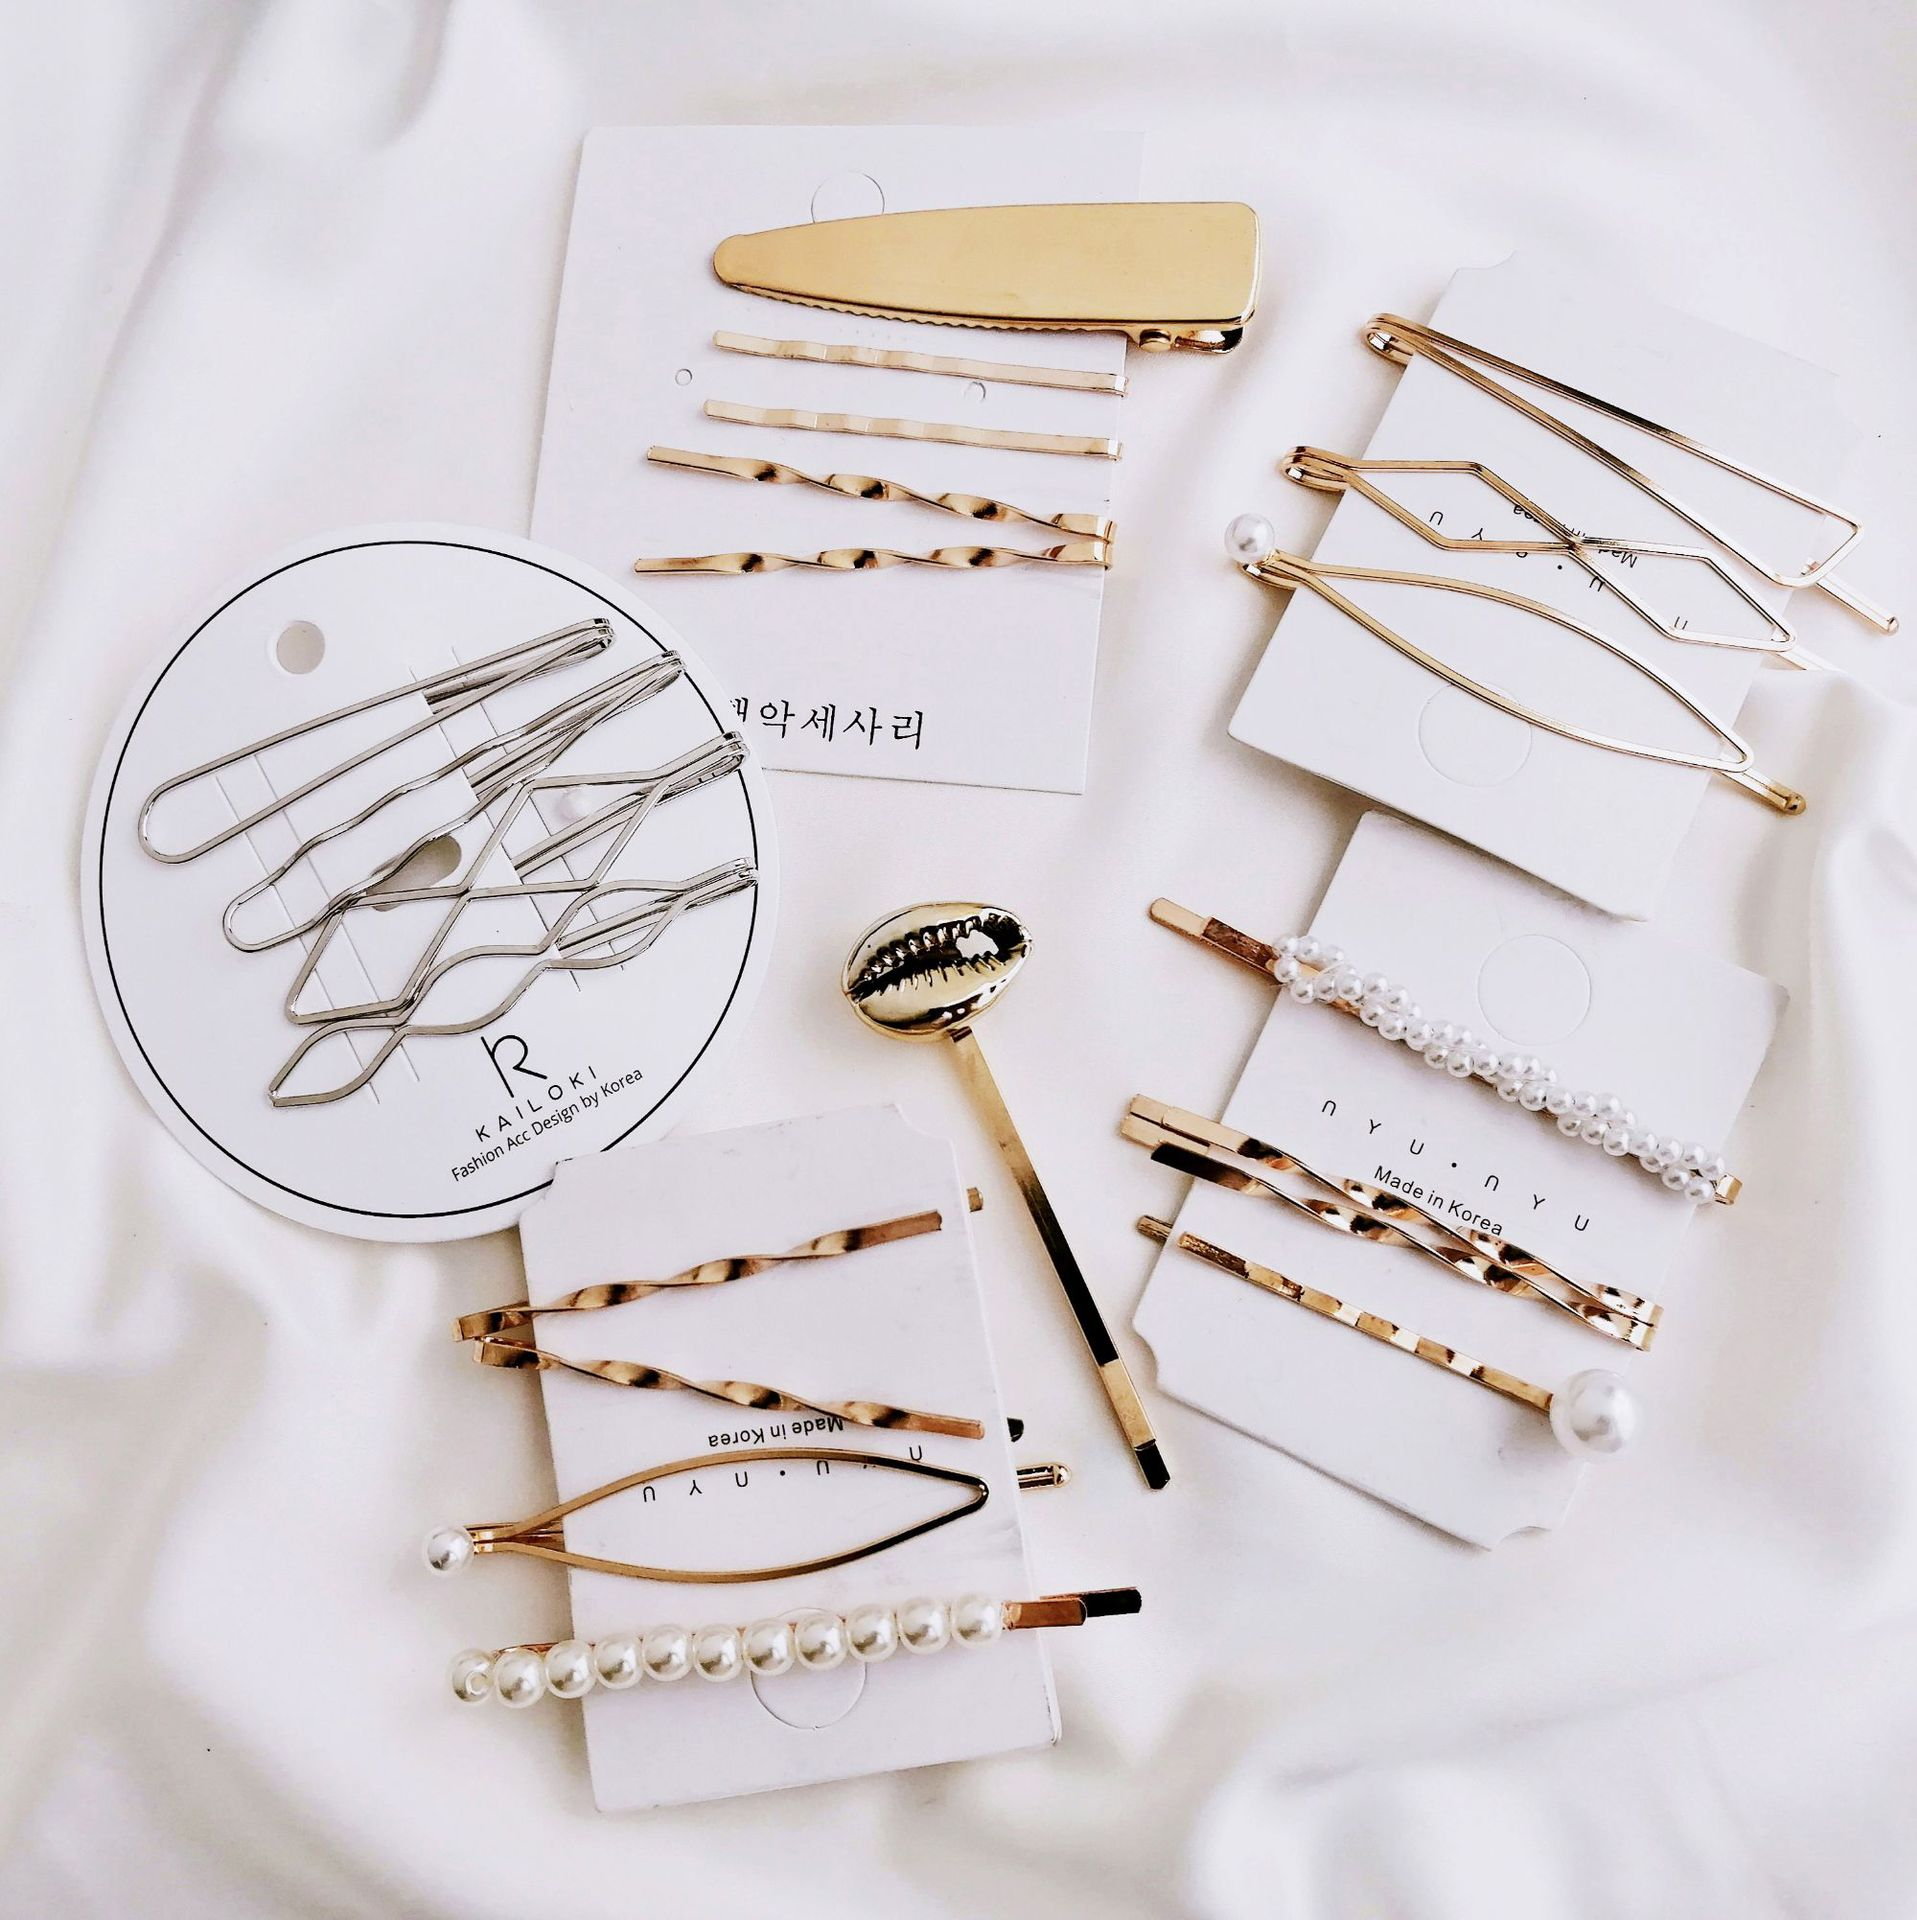 Shell Pearl Metal Hair Clip Hairband Comb Bobby Pin Barrette Hairpin Headdress Accessories Beauty Styling Toolsl(China)